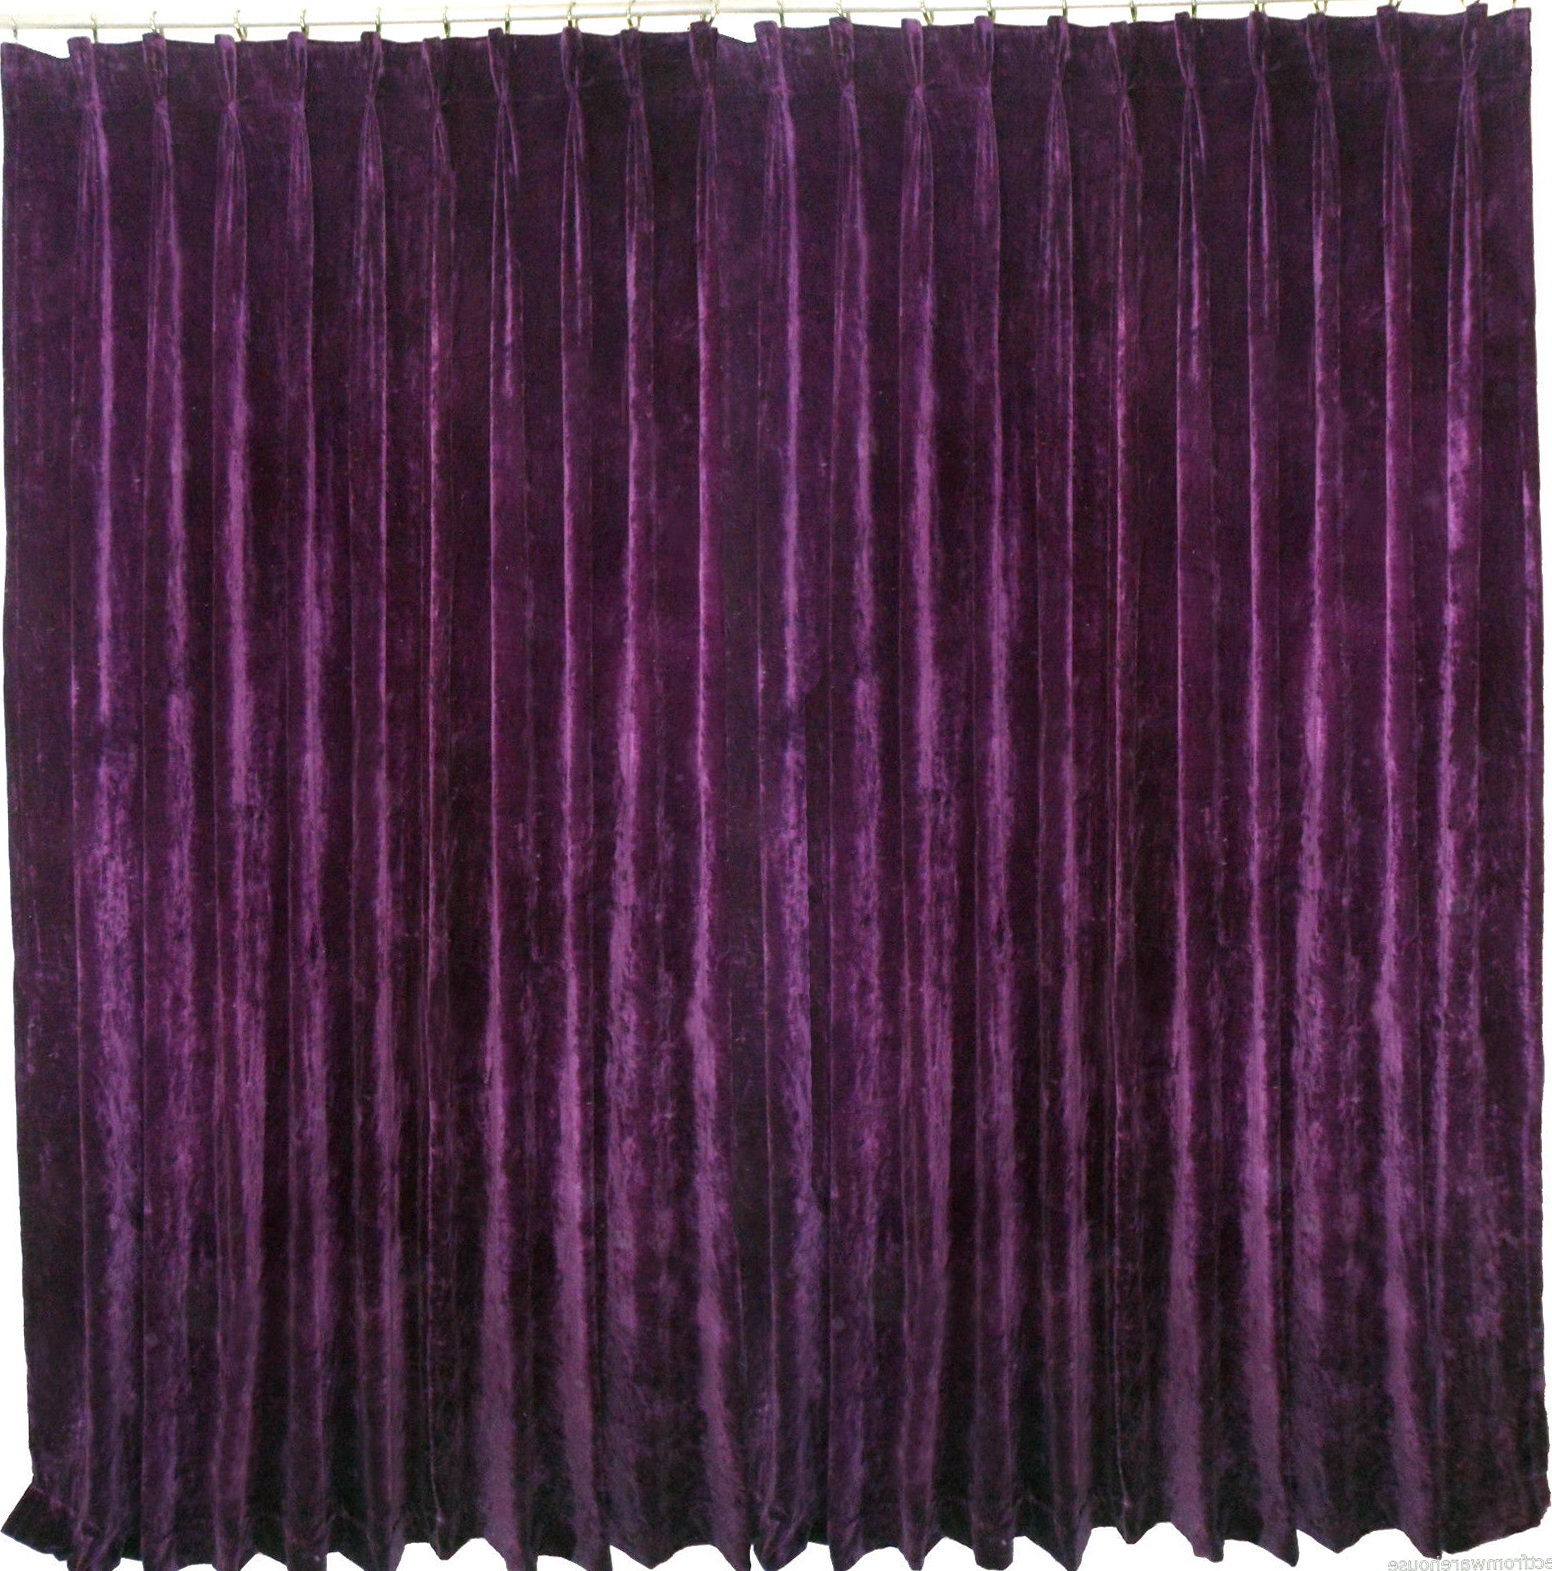 purple violet near sweet sets attractive cheap curtain for me curtains girls bedroom decor also pictures vanity